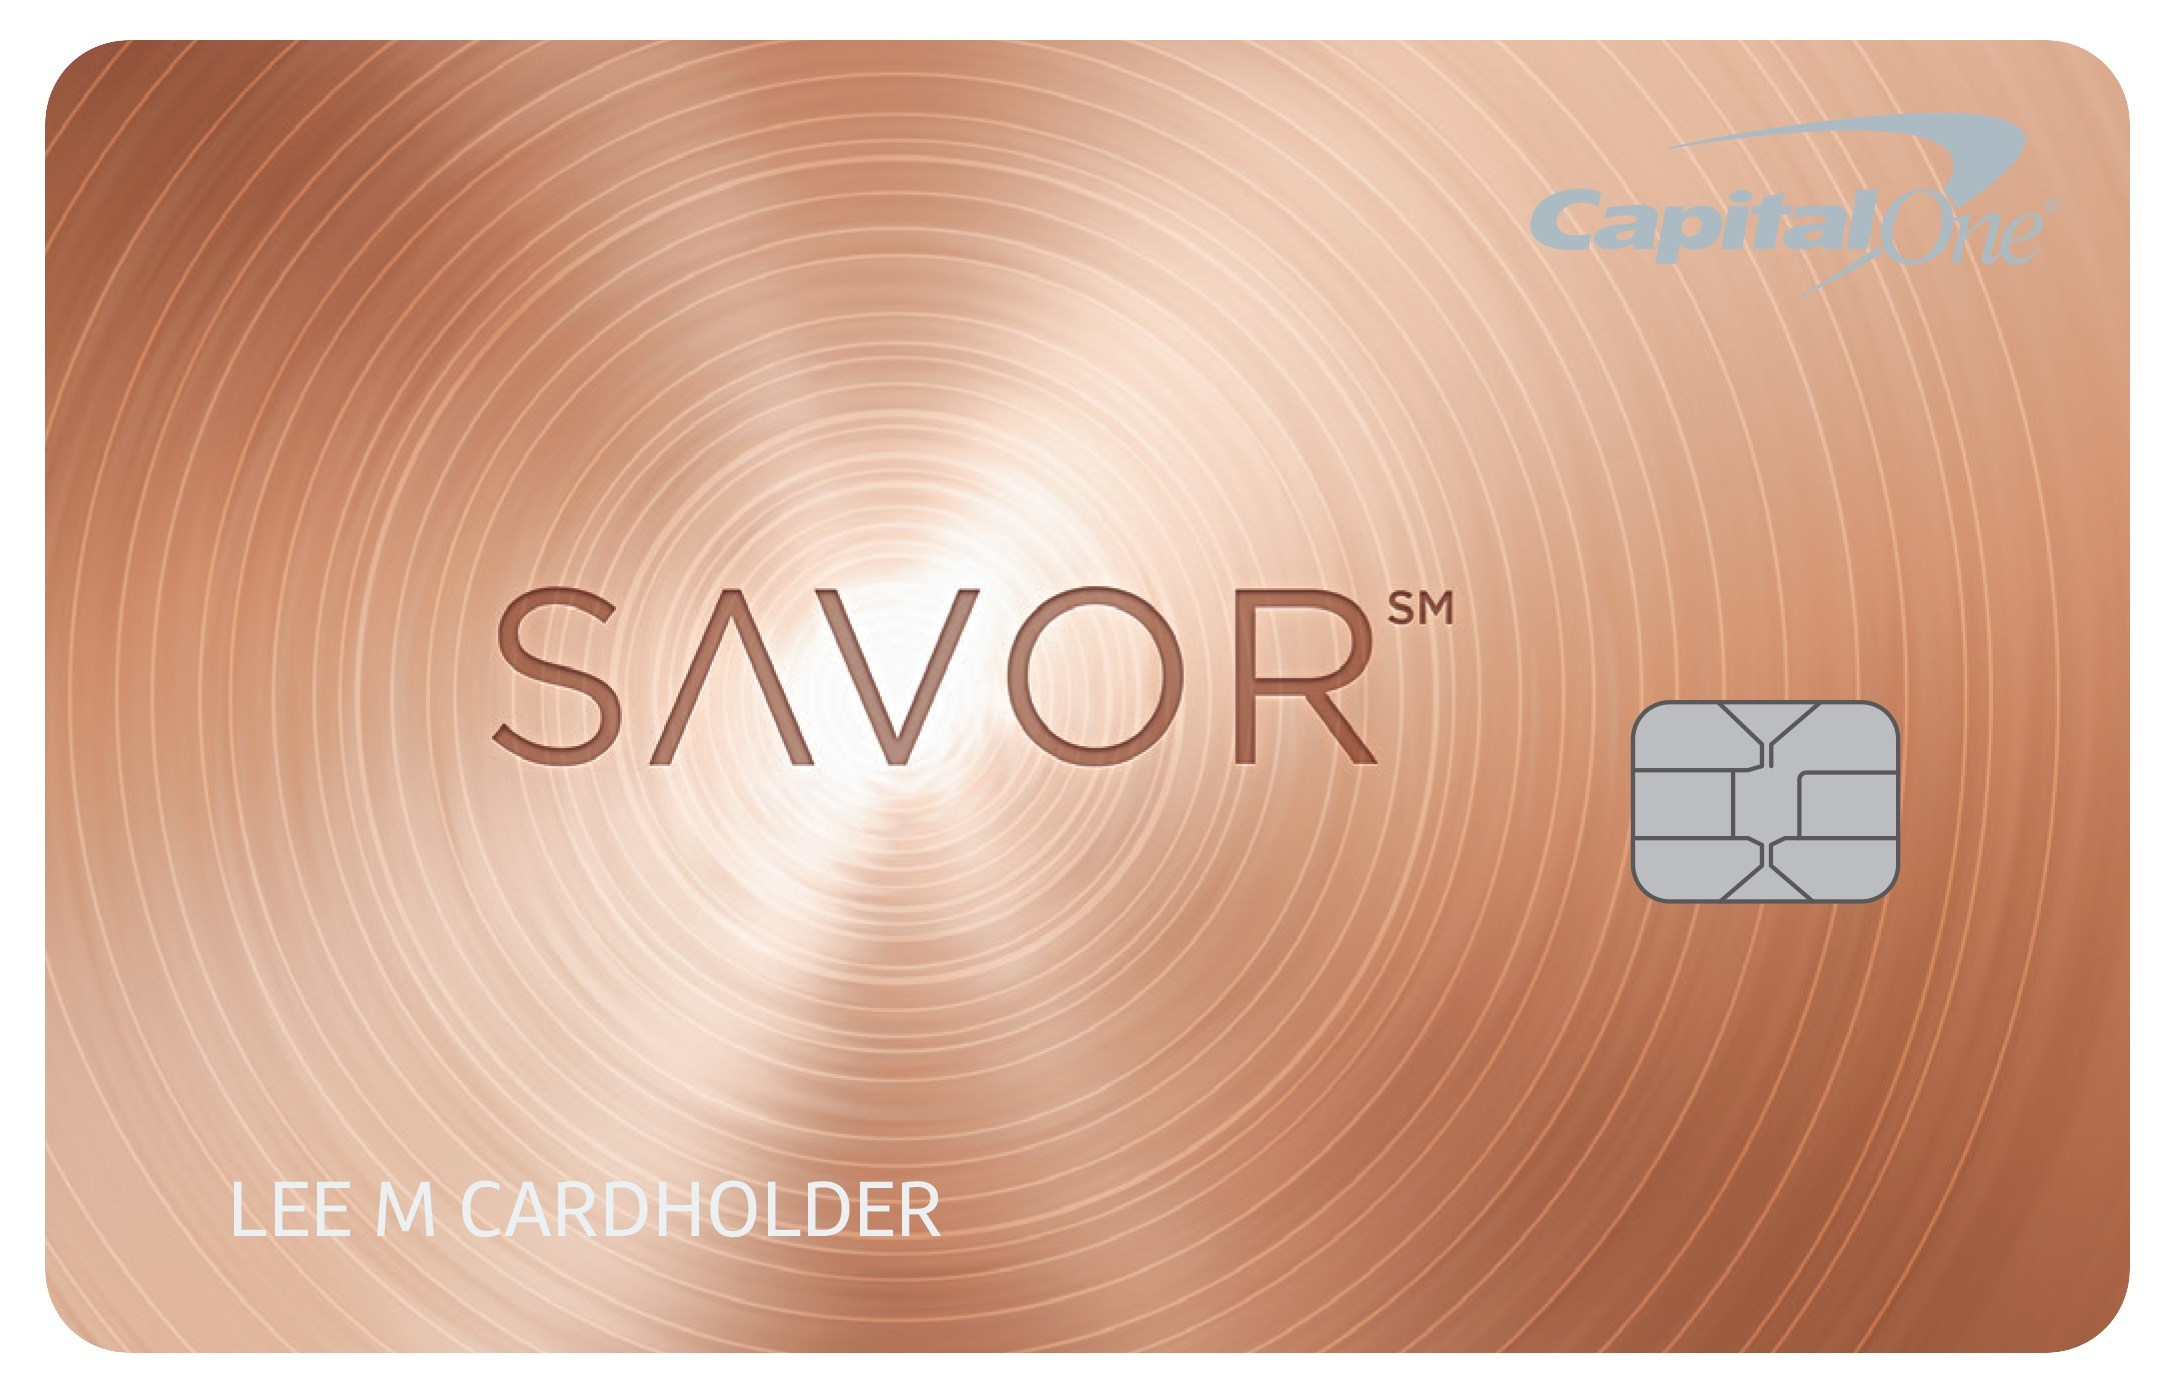 Capital One® Launches The Savor(SM) Card, A New Cash Back Card